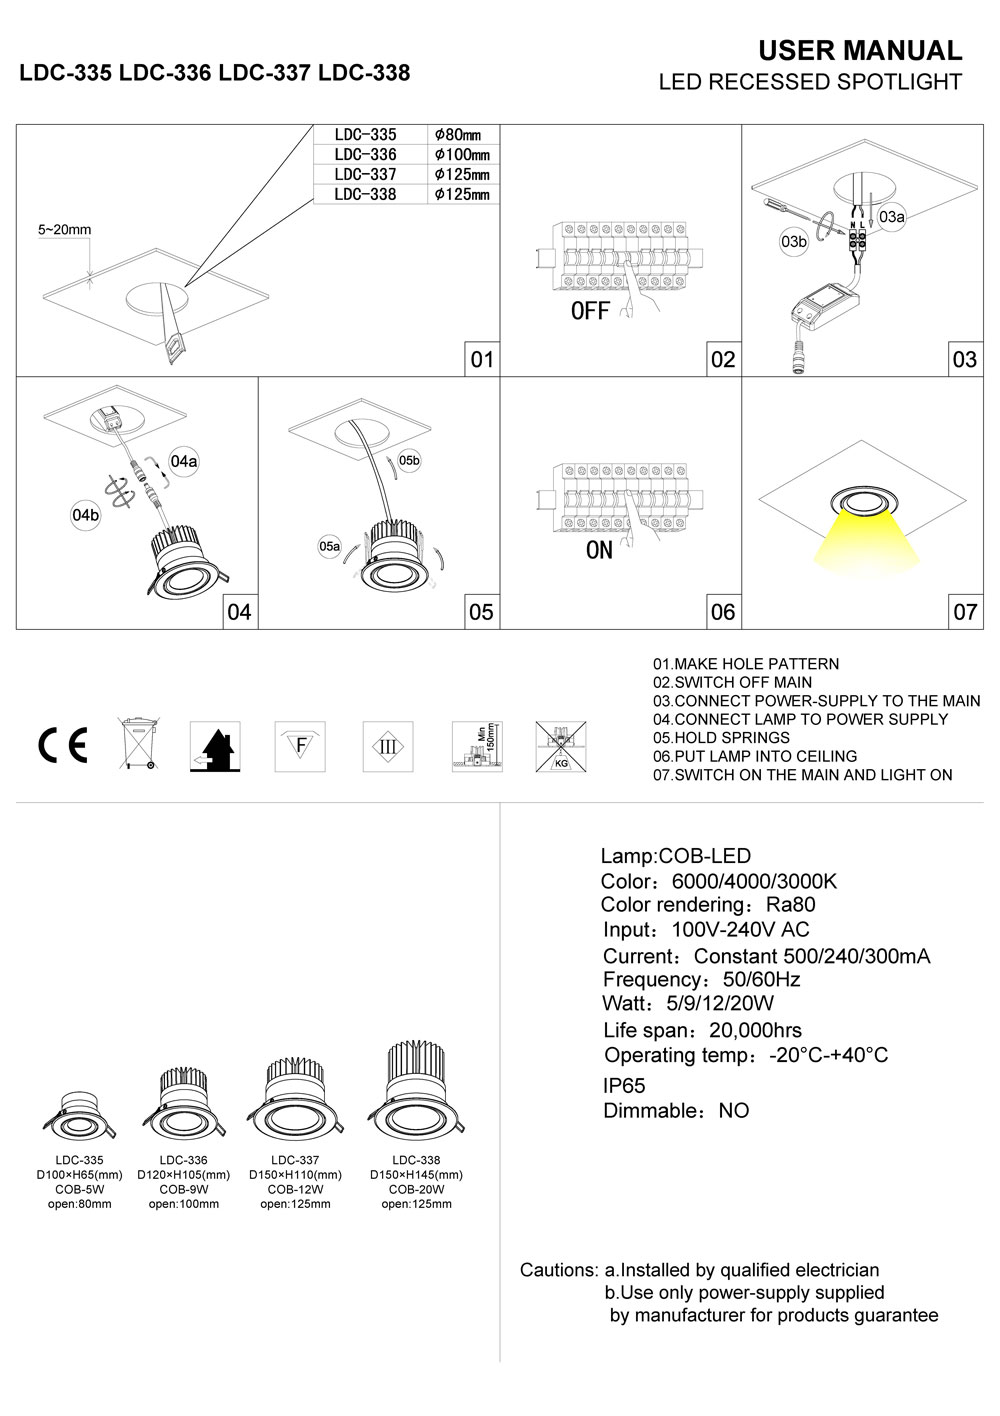 LDC-335-LDC-336-LDC-337 IP65 LED downlight installation guide